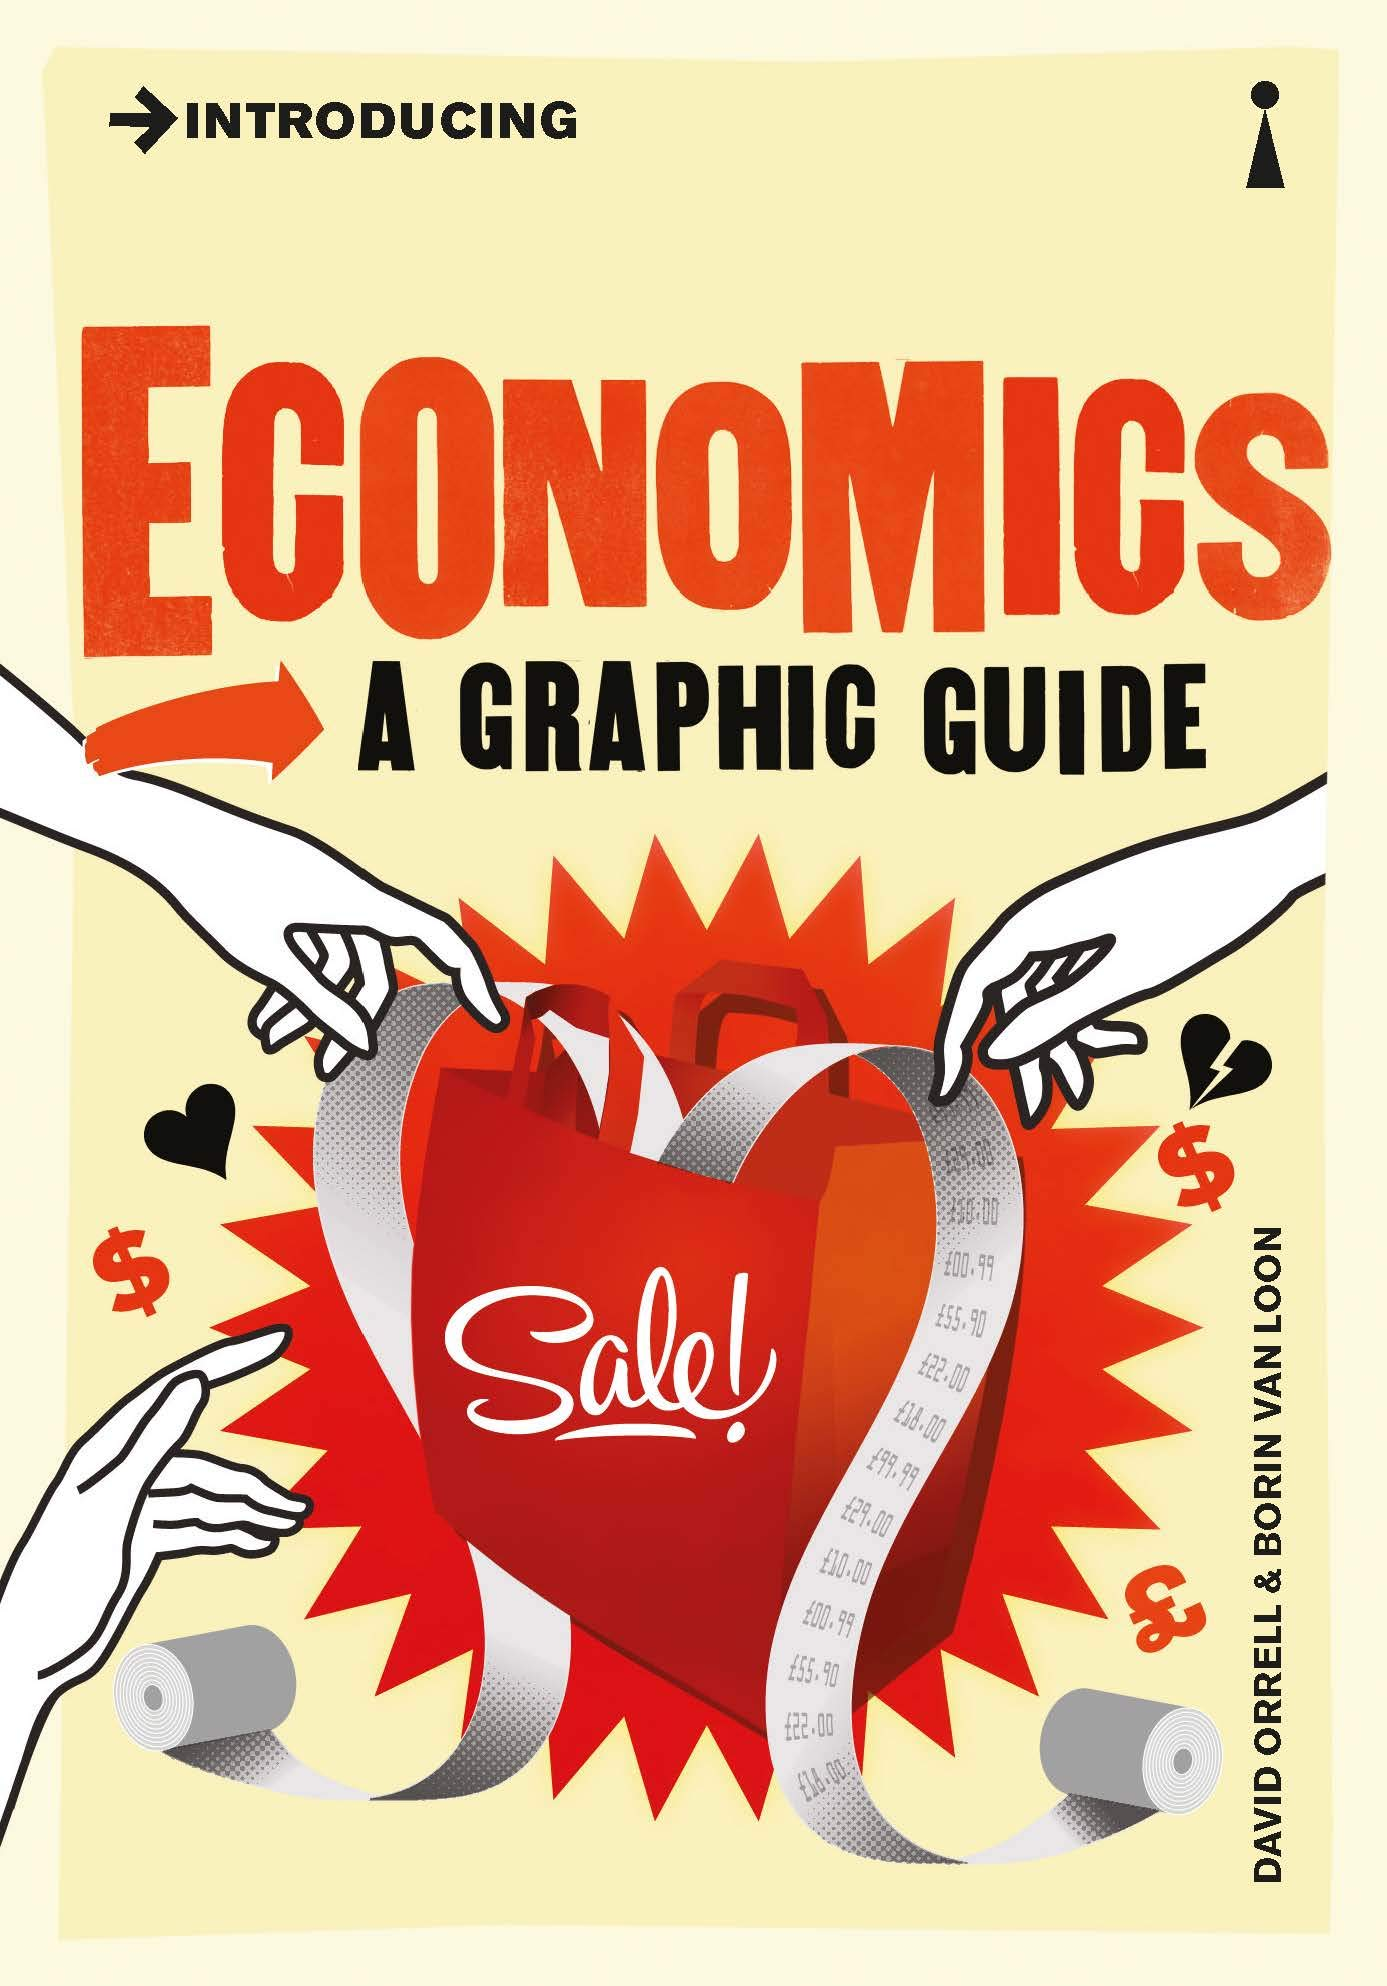 Introducing Economics: A Graphic Guide (Introducing...) (English Edition)